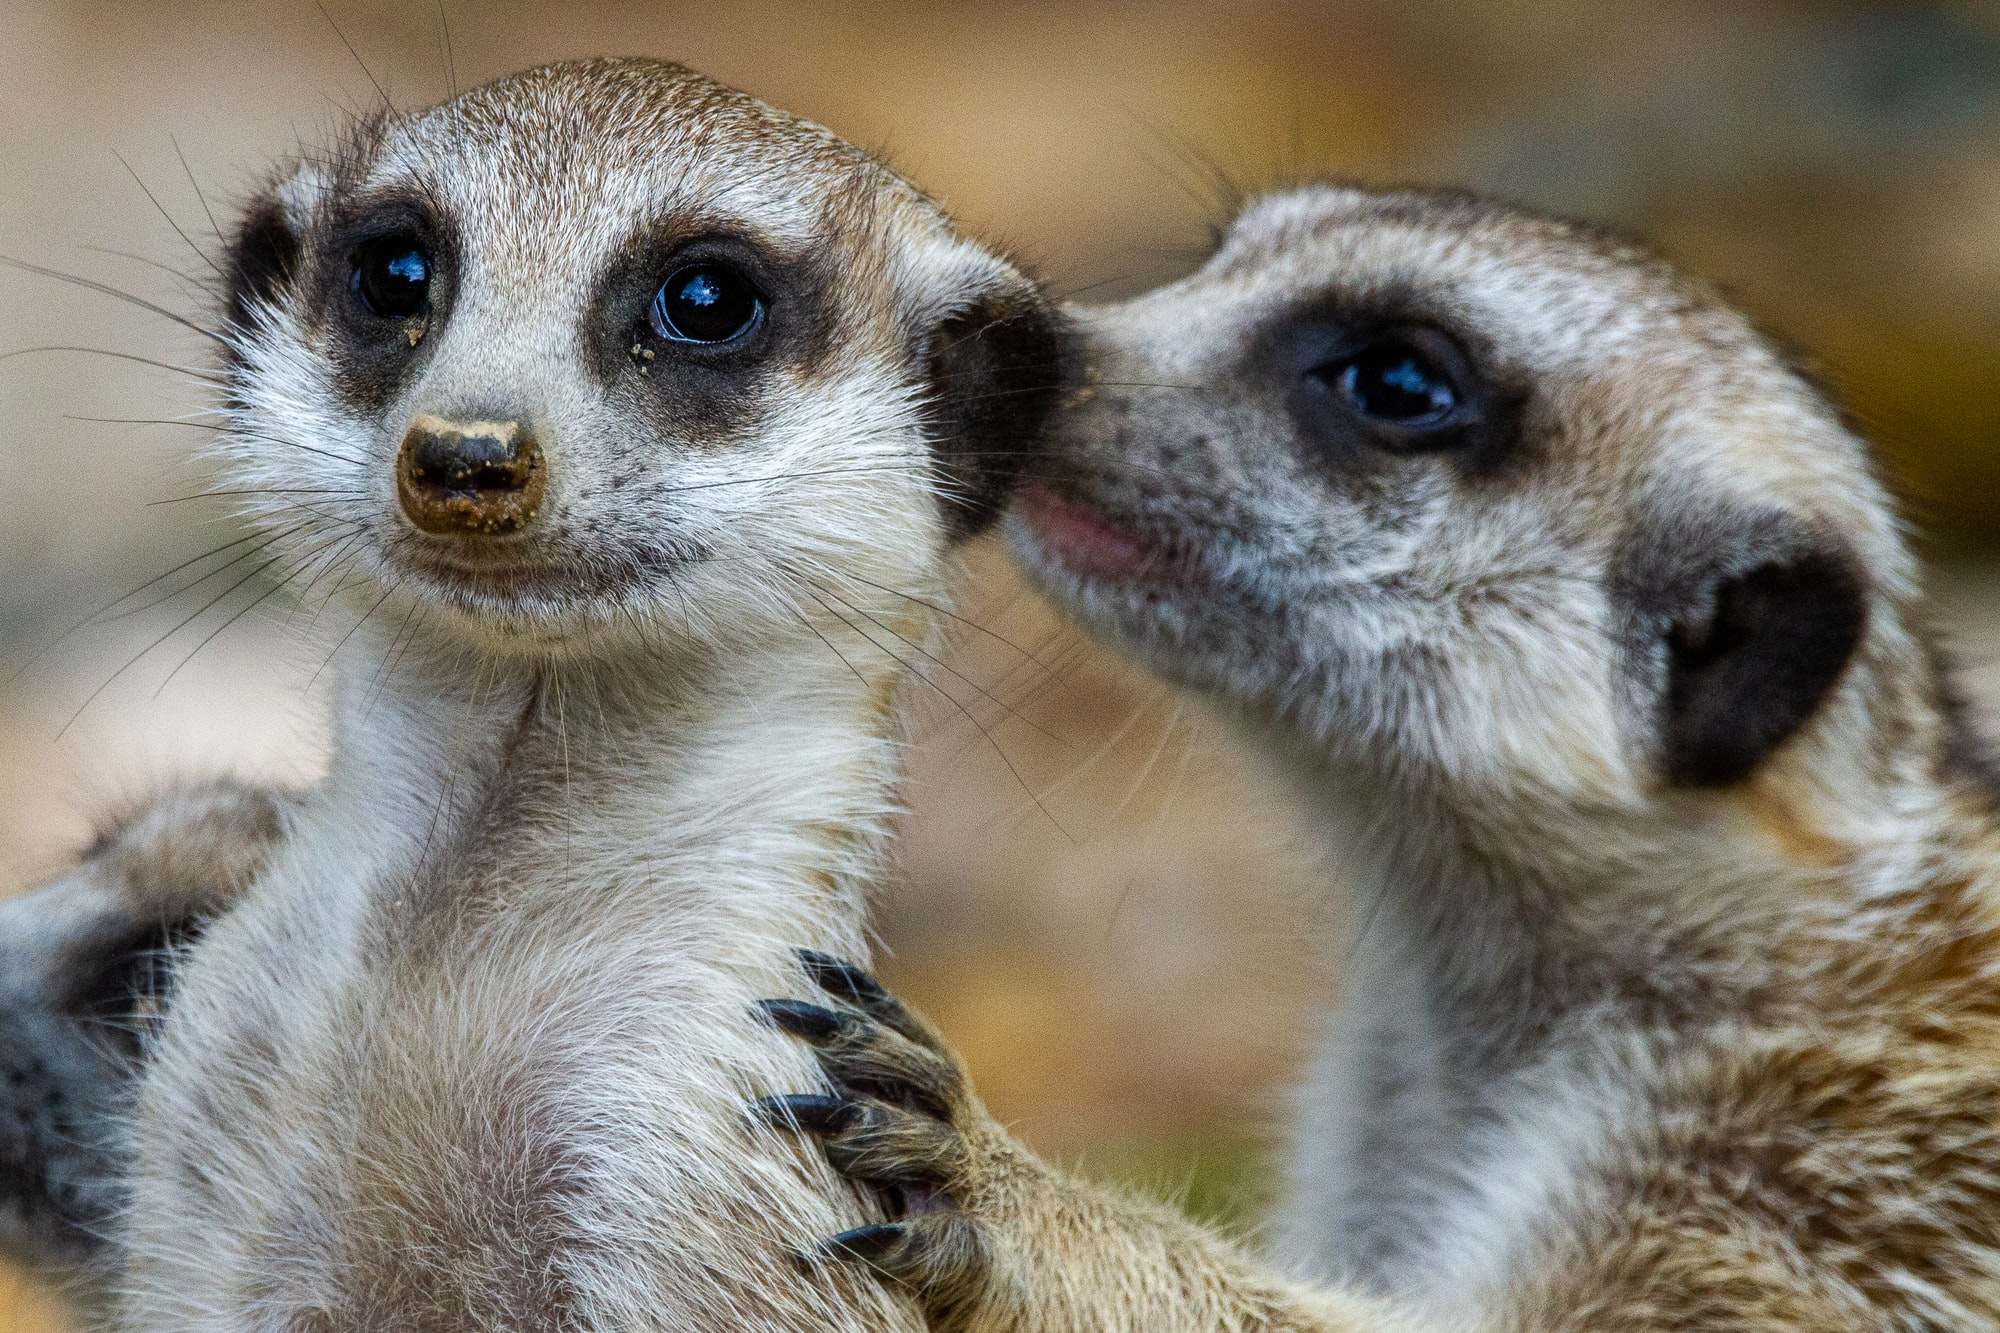 A meerkat whispers to another meerkat at the Memphis Zoo.